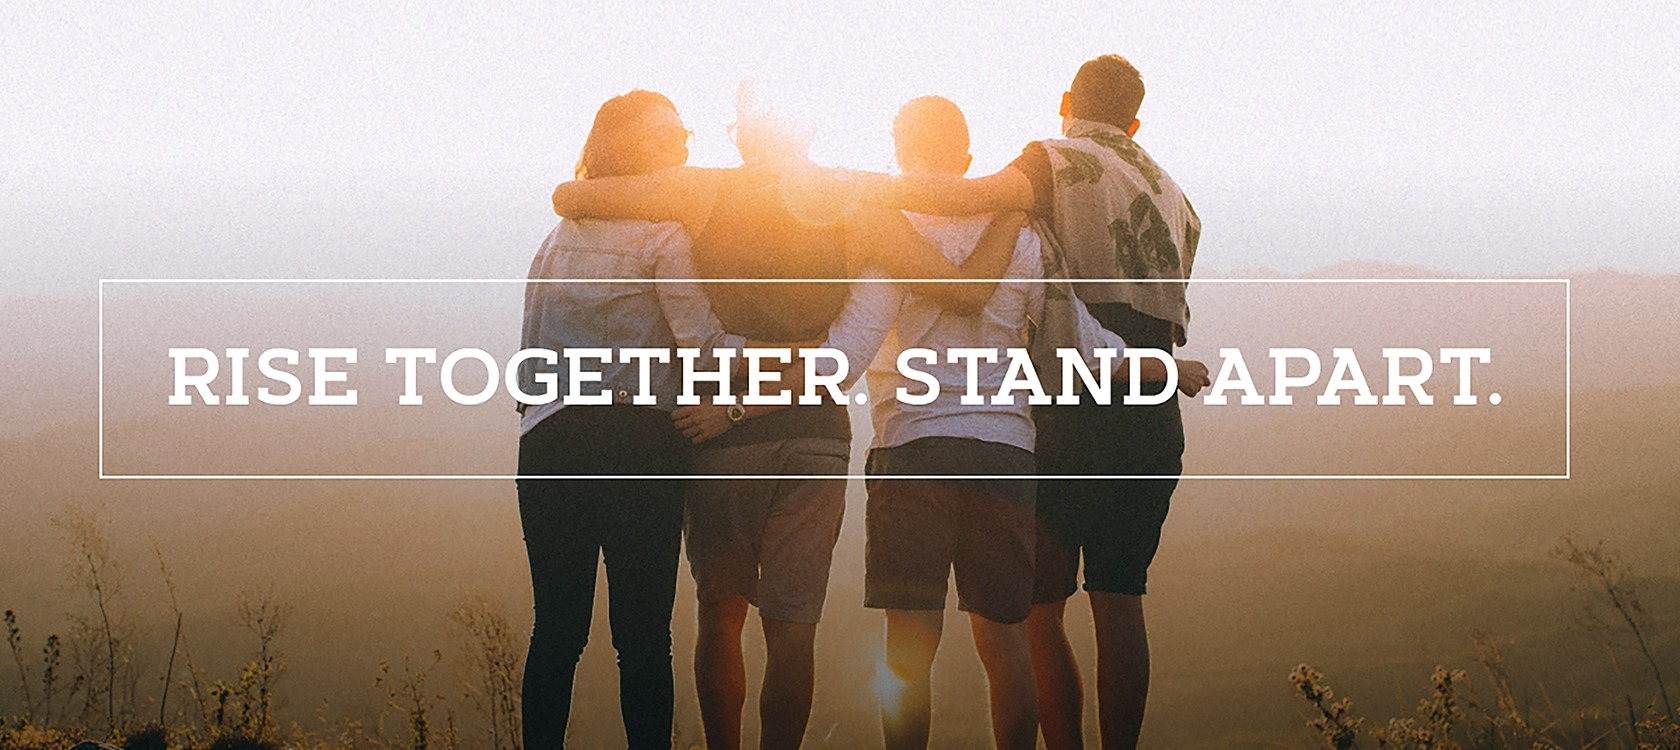 Rise Together. Stand Apart.